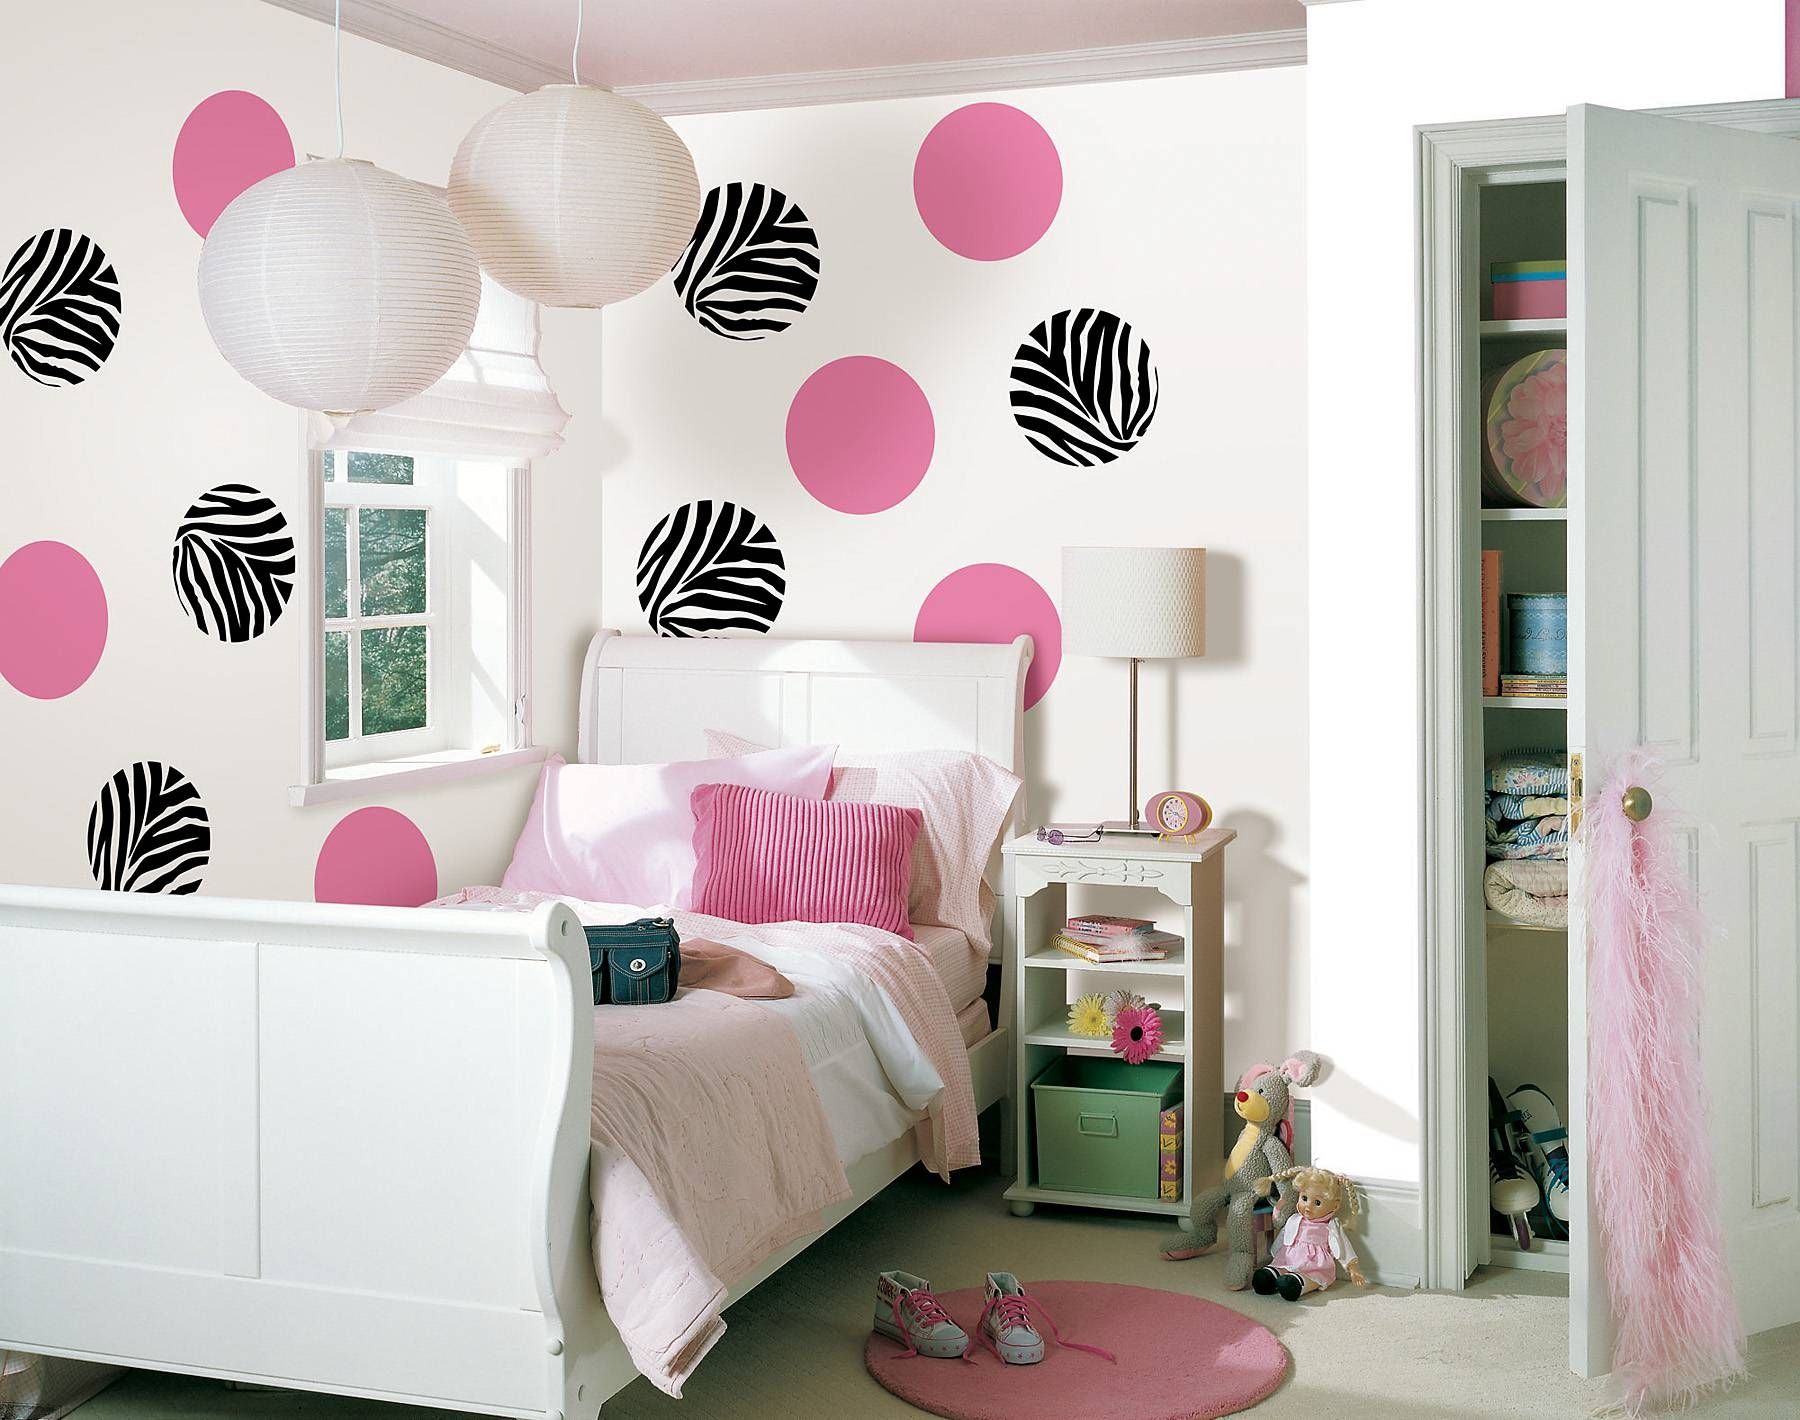 Circle Pink And Black White Zebra Wall Art Connectedpink Bed Regarding Most Popular Wall Art For Teens (View 15 of 20)